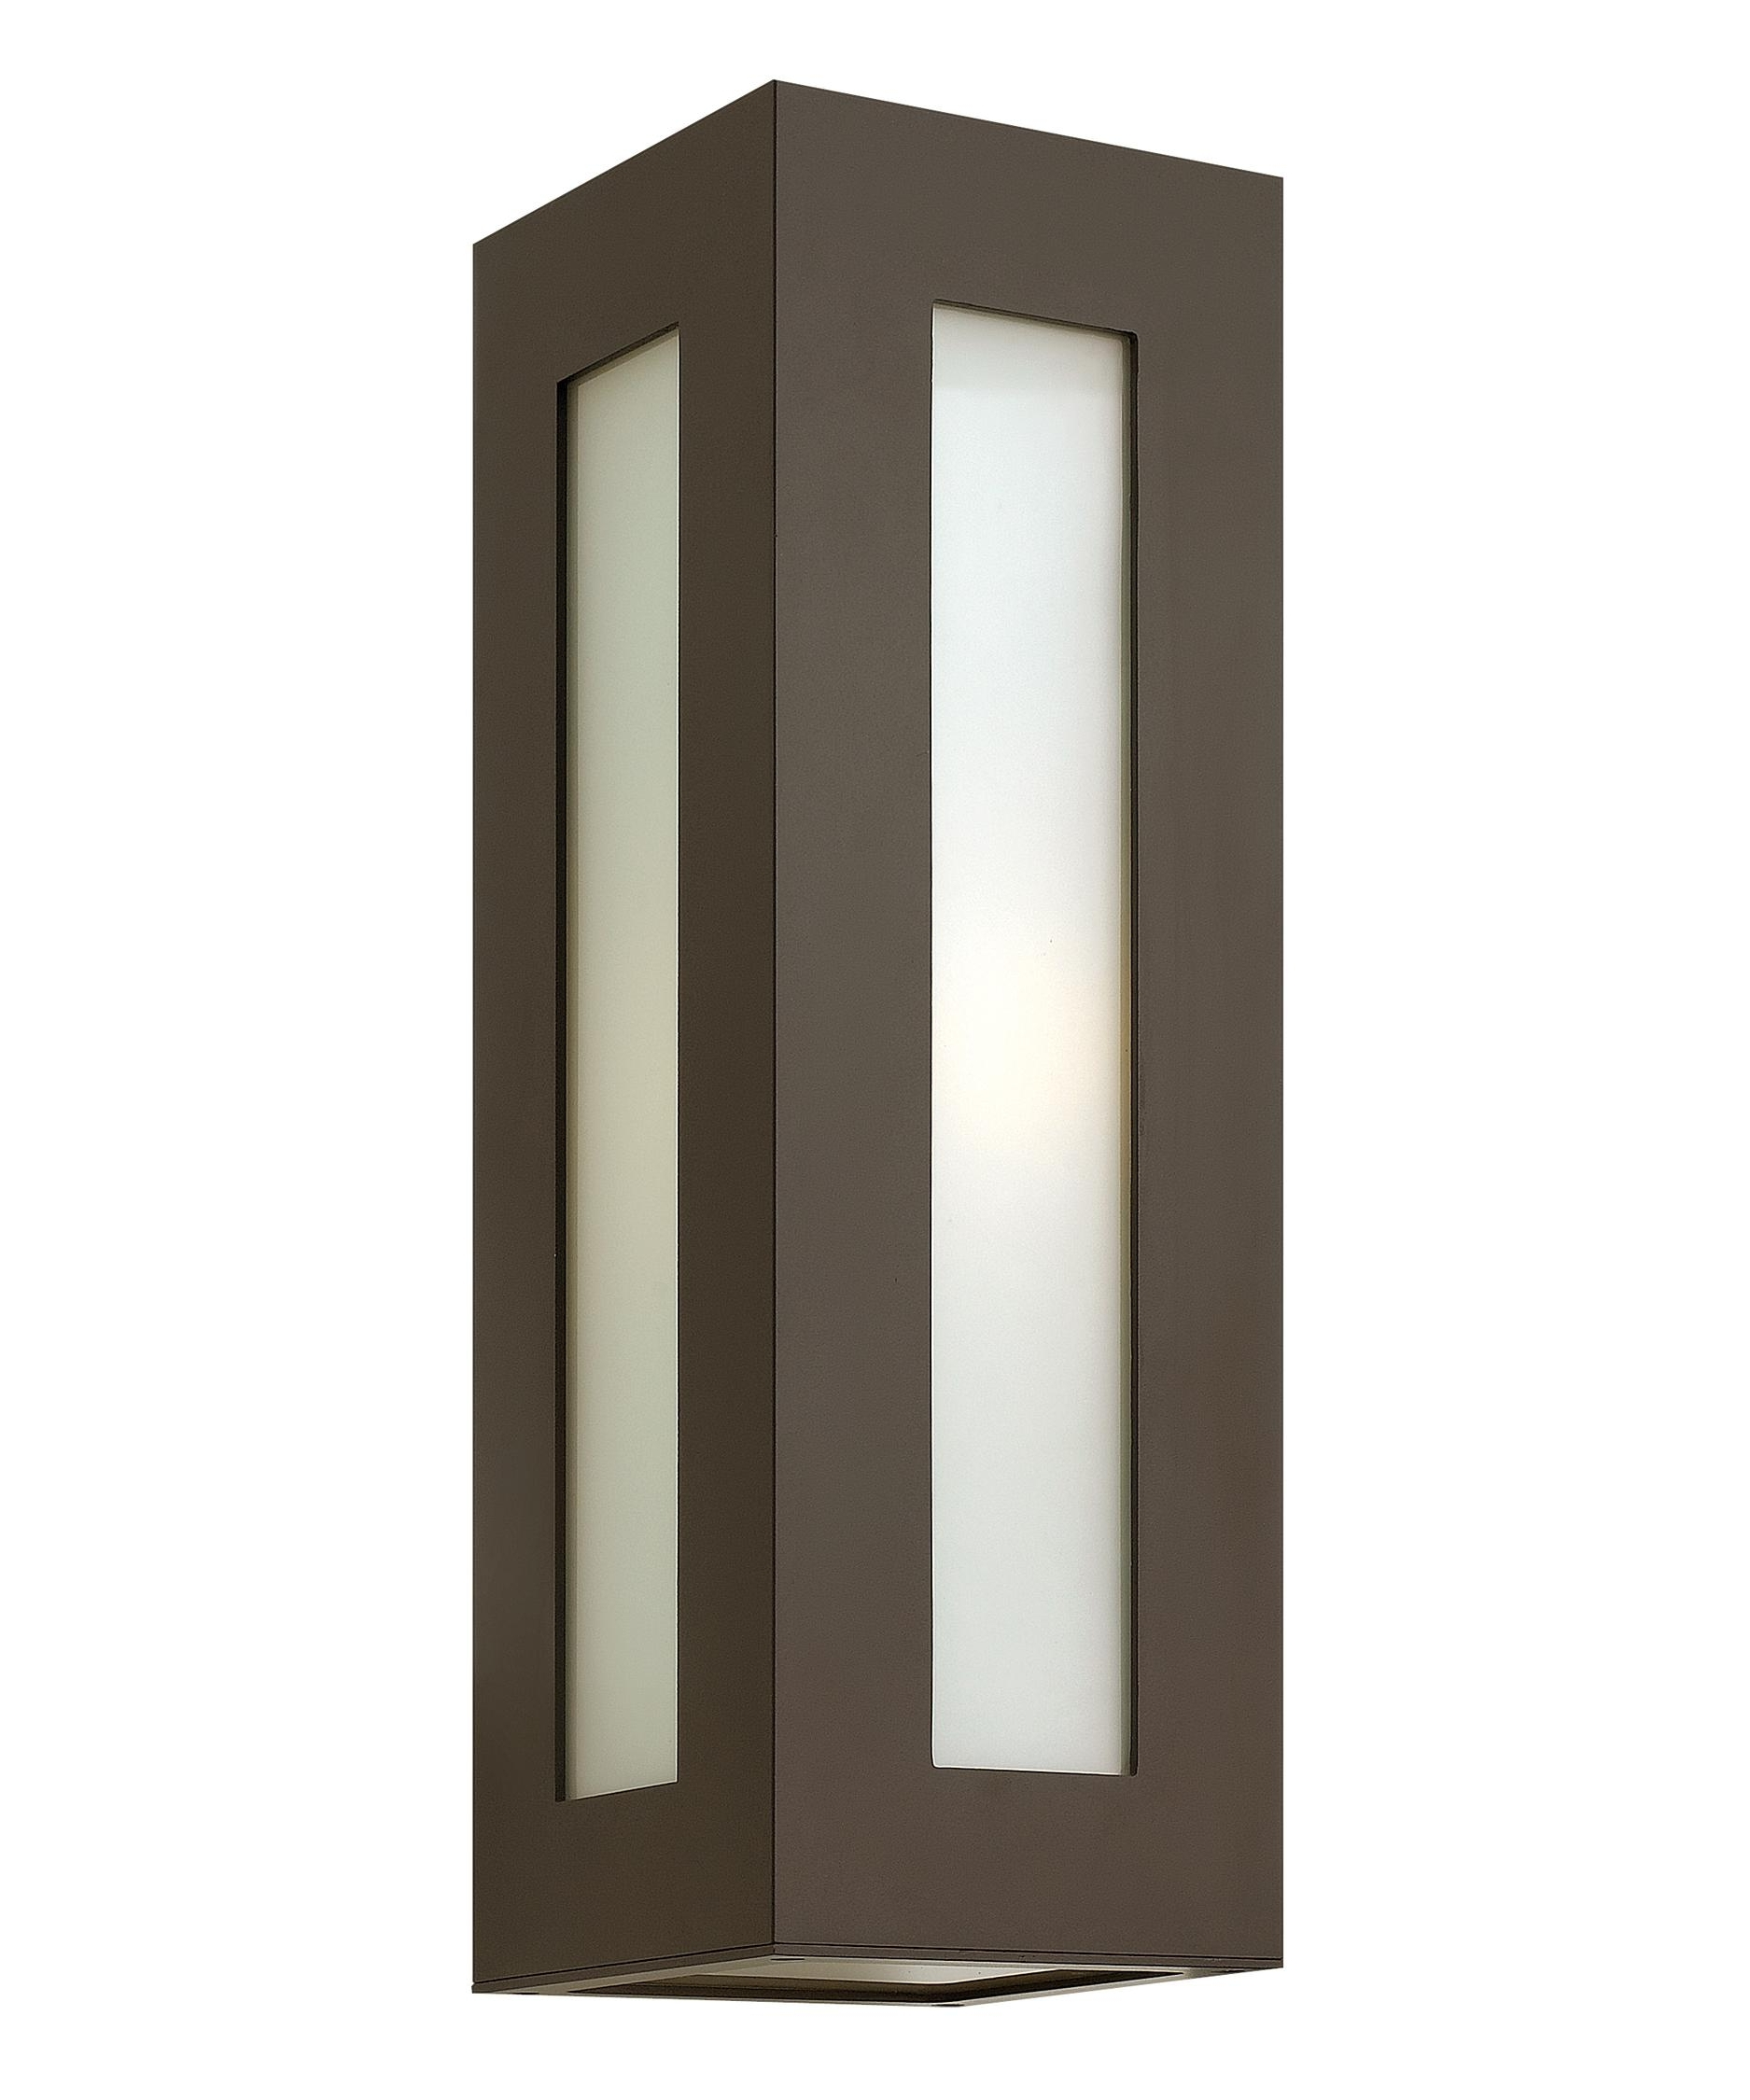 Best And Newest Contemporary Outdoor Wall Lighting With Regard To Hinkley Lighting 2194 Dorian 6 Inch Wide 1 Light Outdoor Wall Light (View 2 of 20)